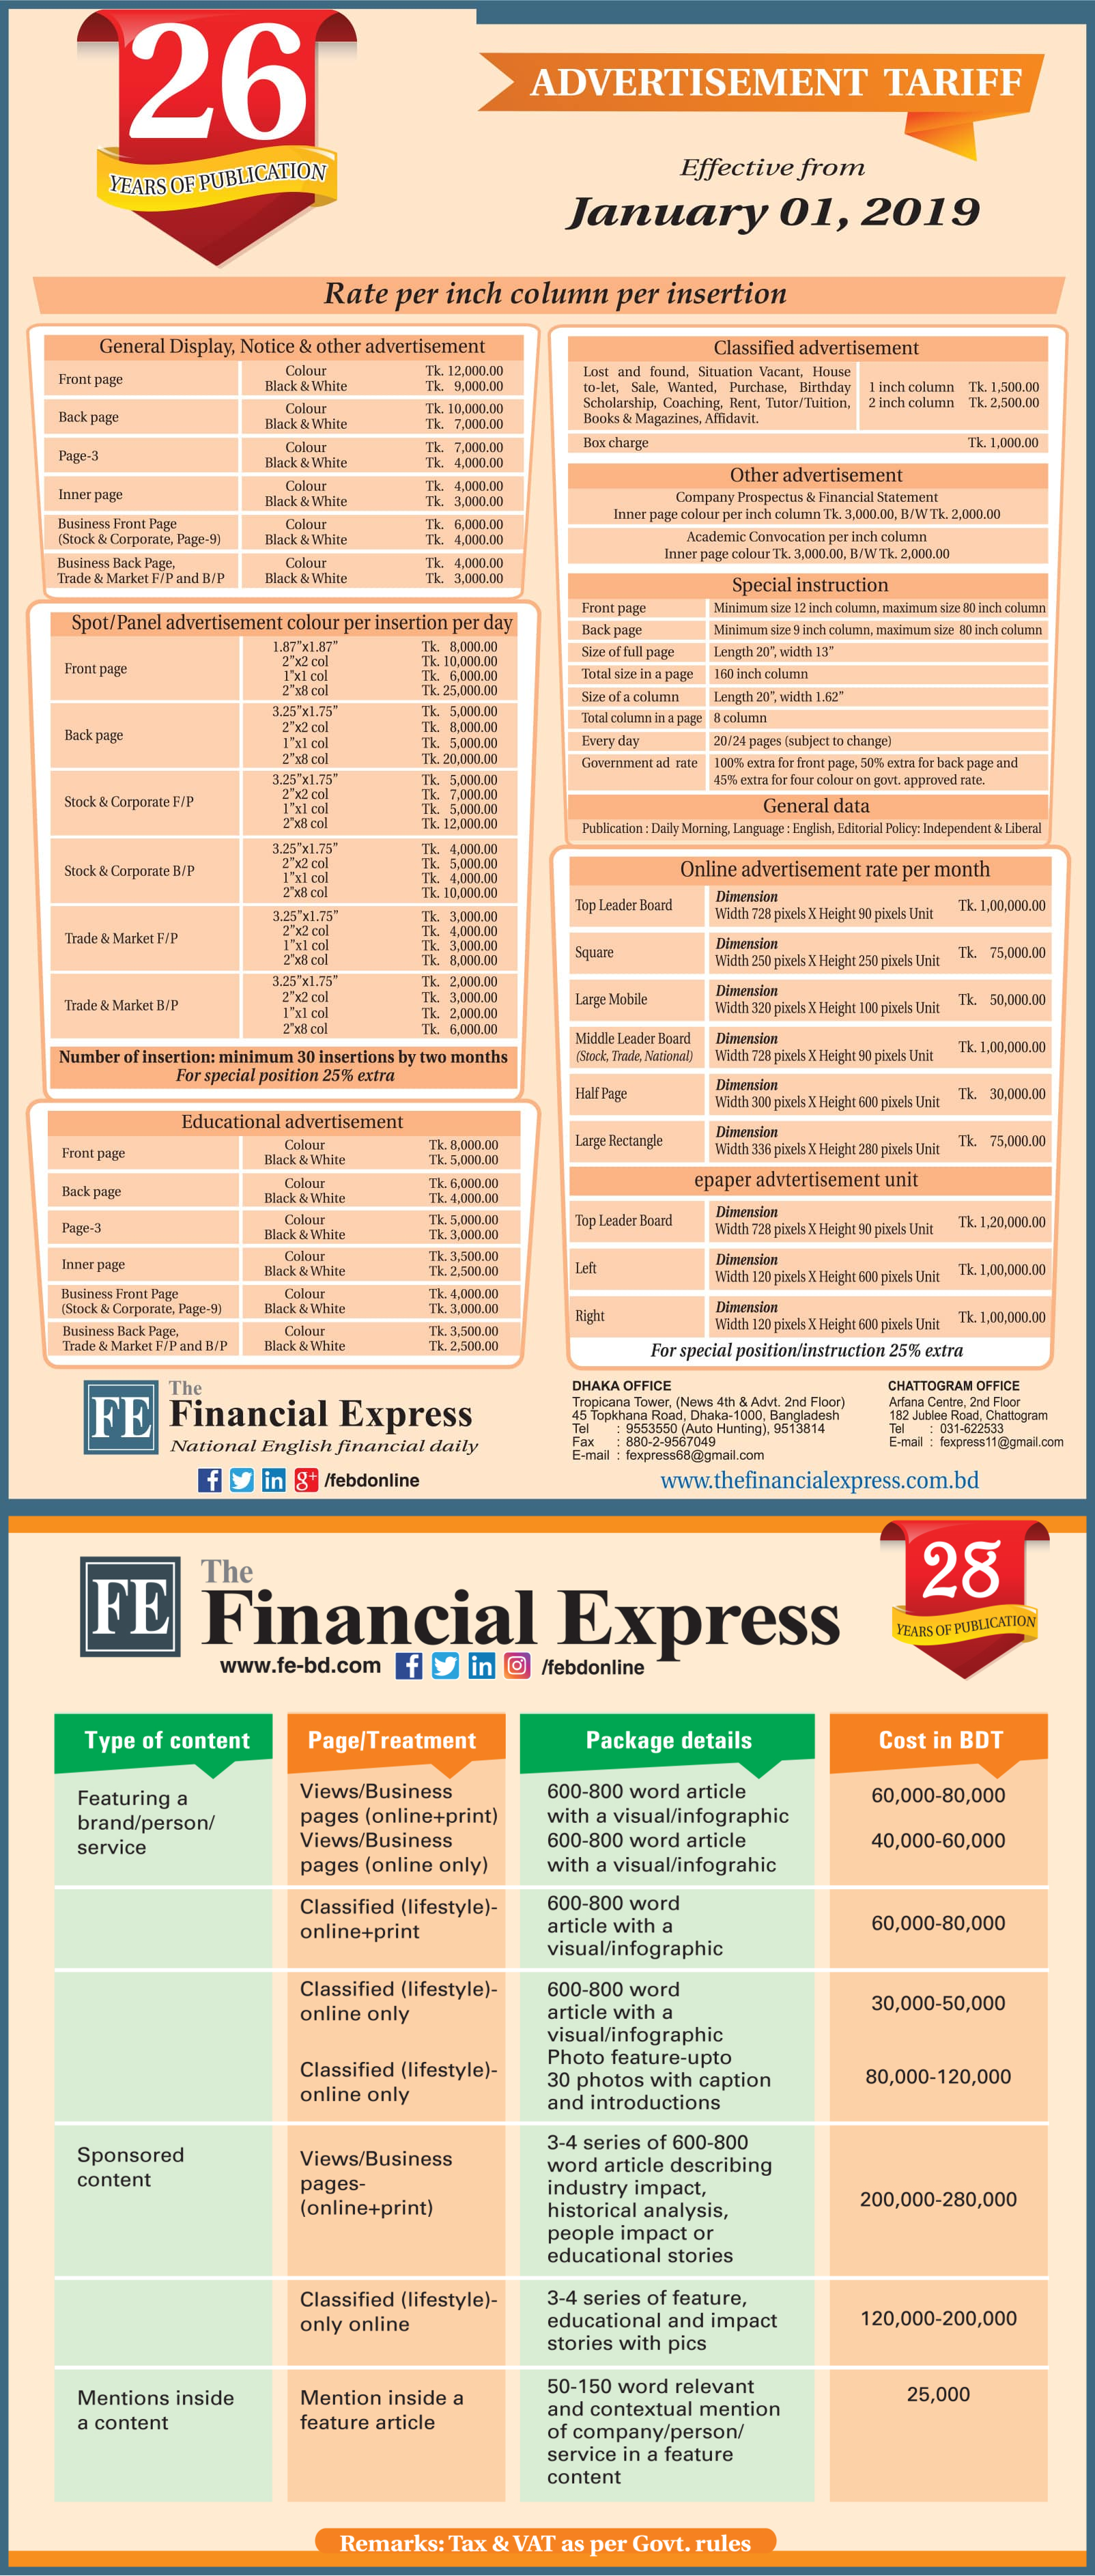 The Financial Express